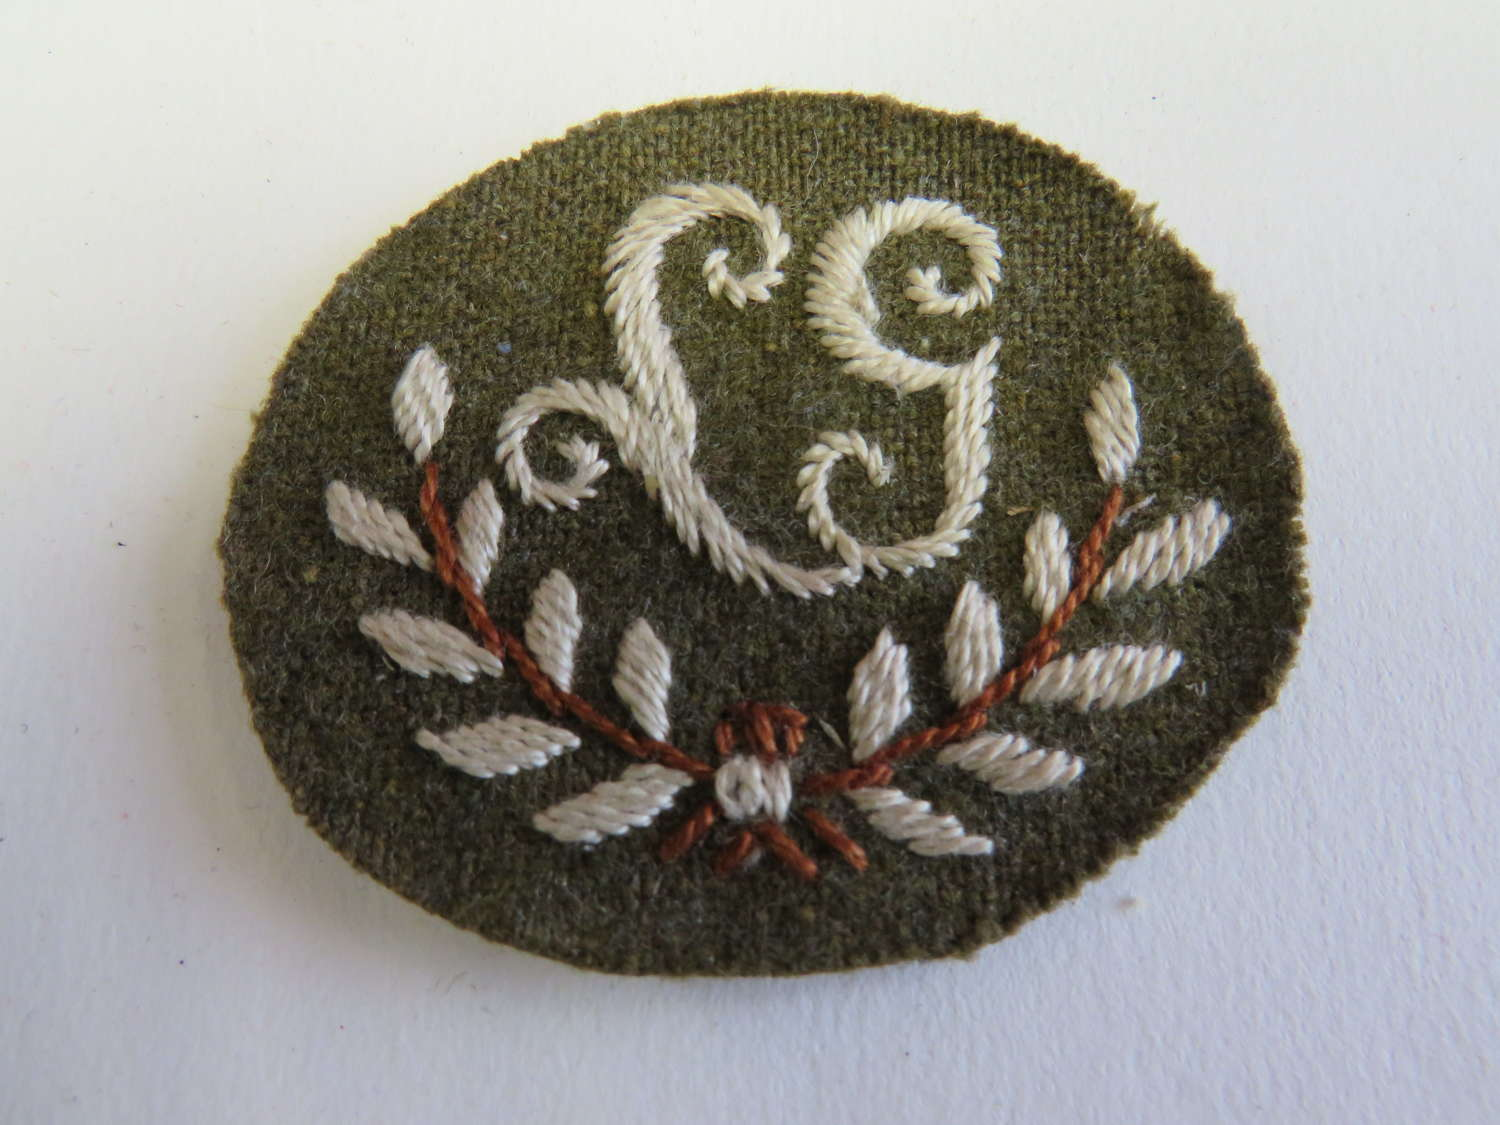 Lewis Gunner Qualification Cuff Badge